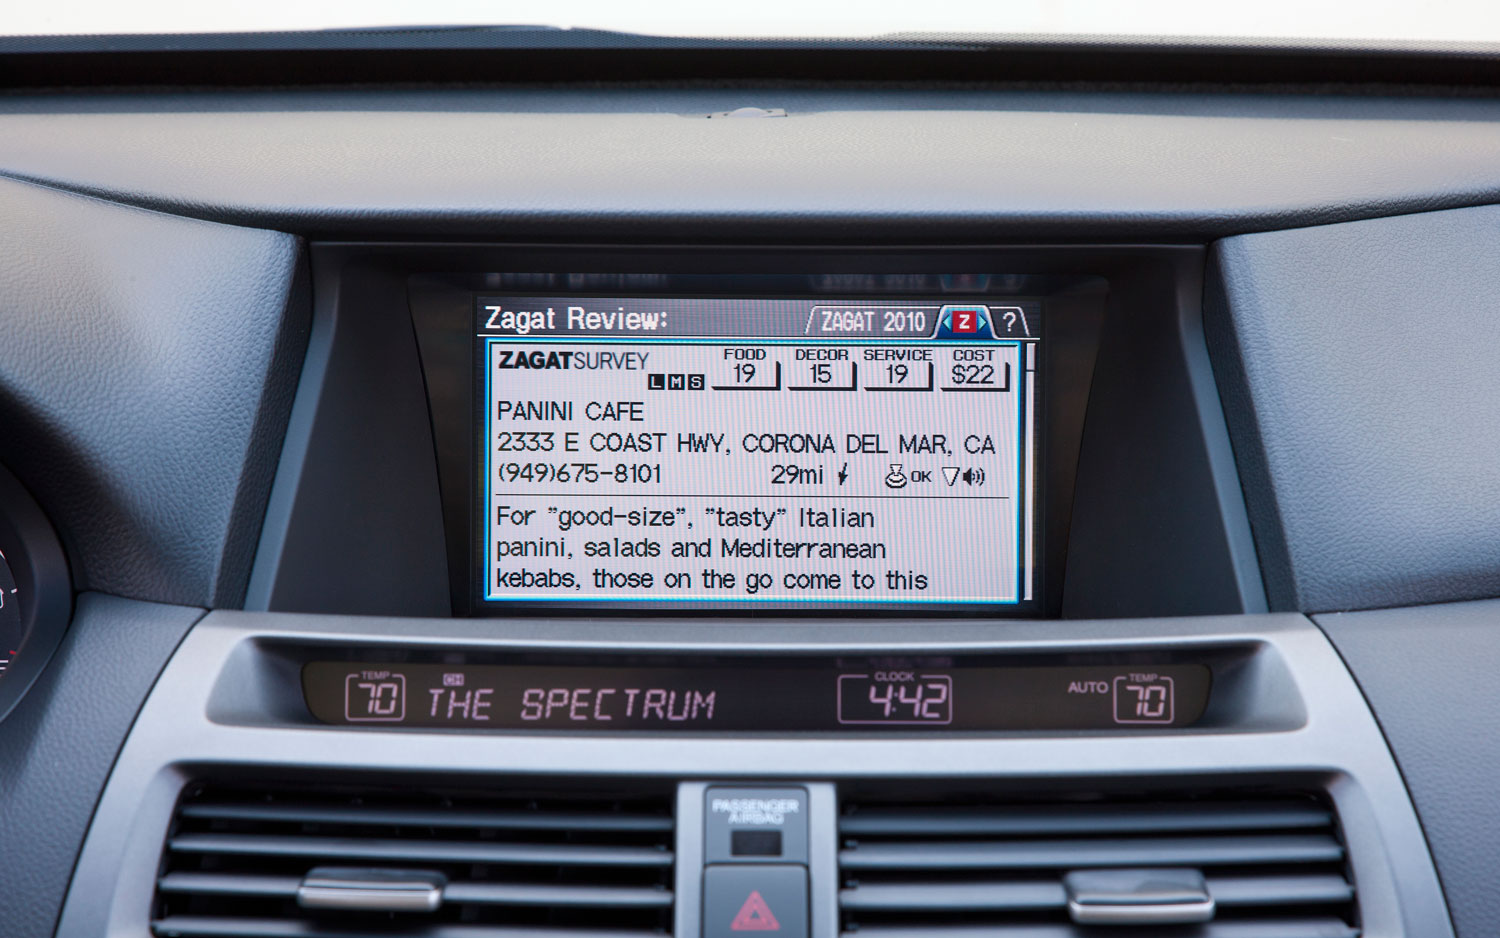 2012 Honda Accord Infotainment System1